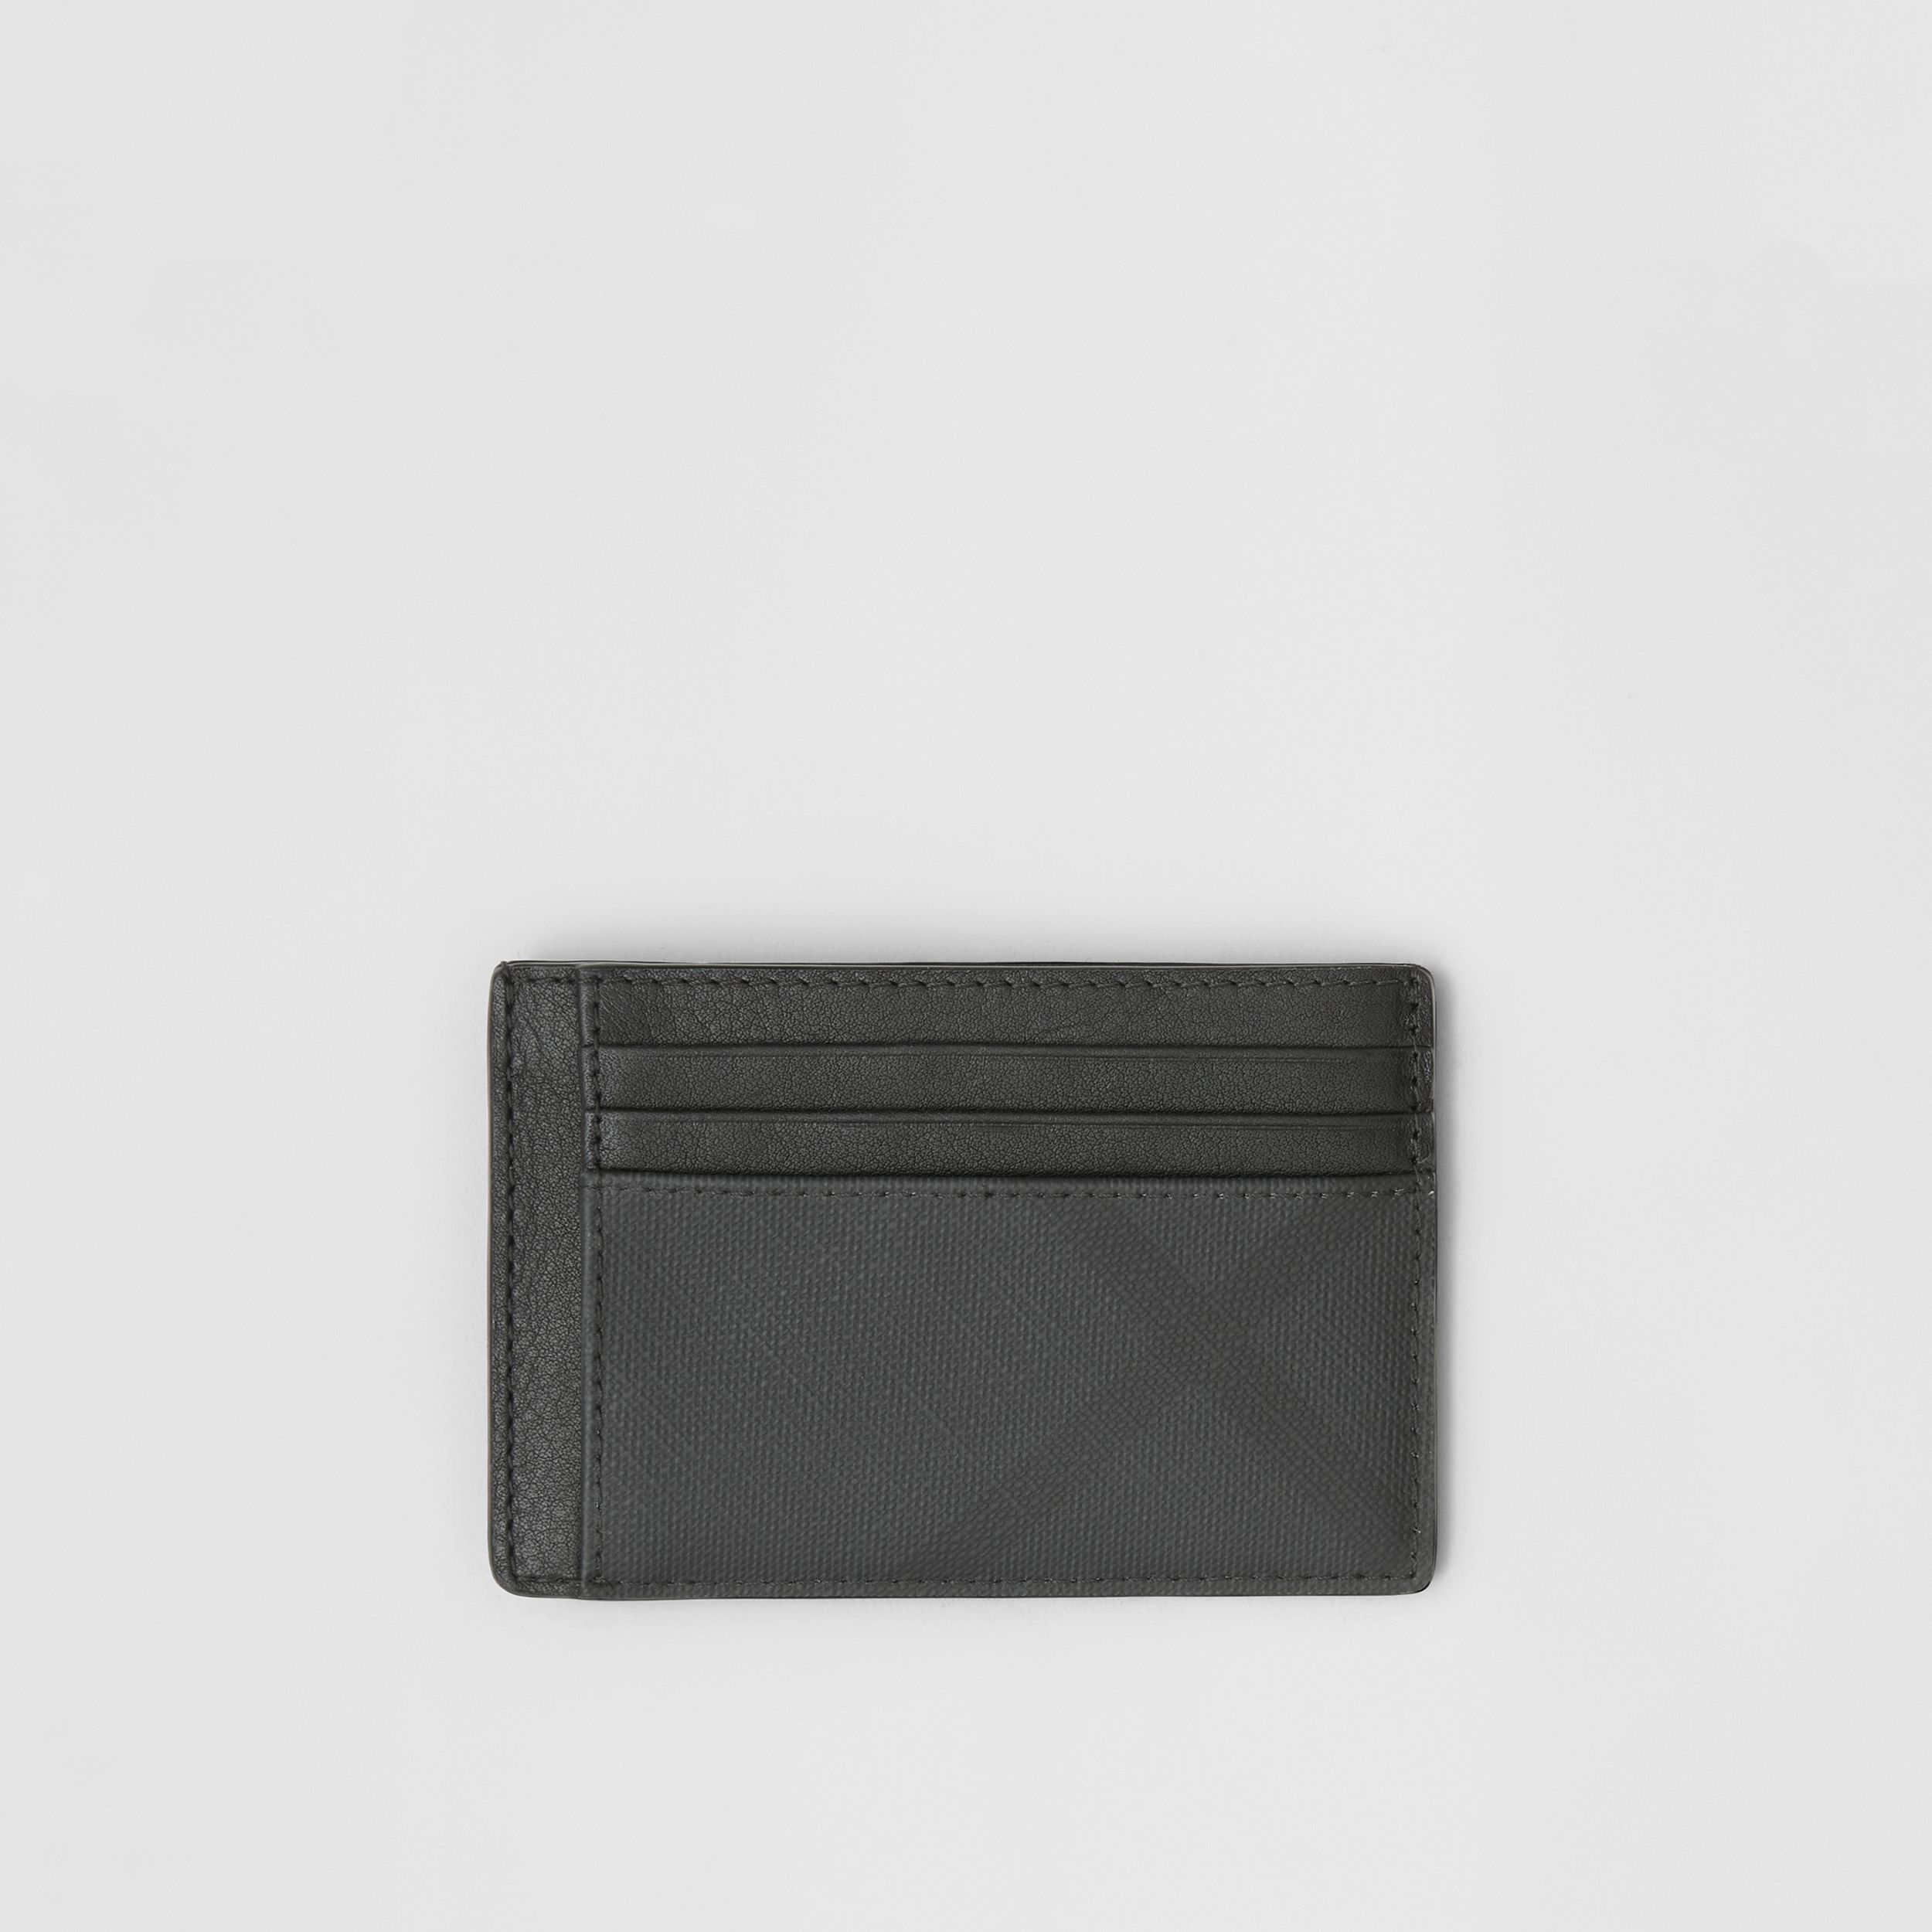 London Check and Leather Money Clip Card Case in Dark Charcoal - Men | Burberry - 1